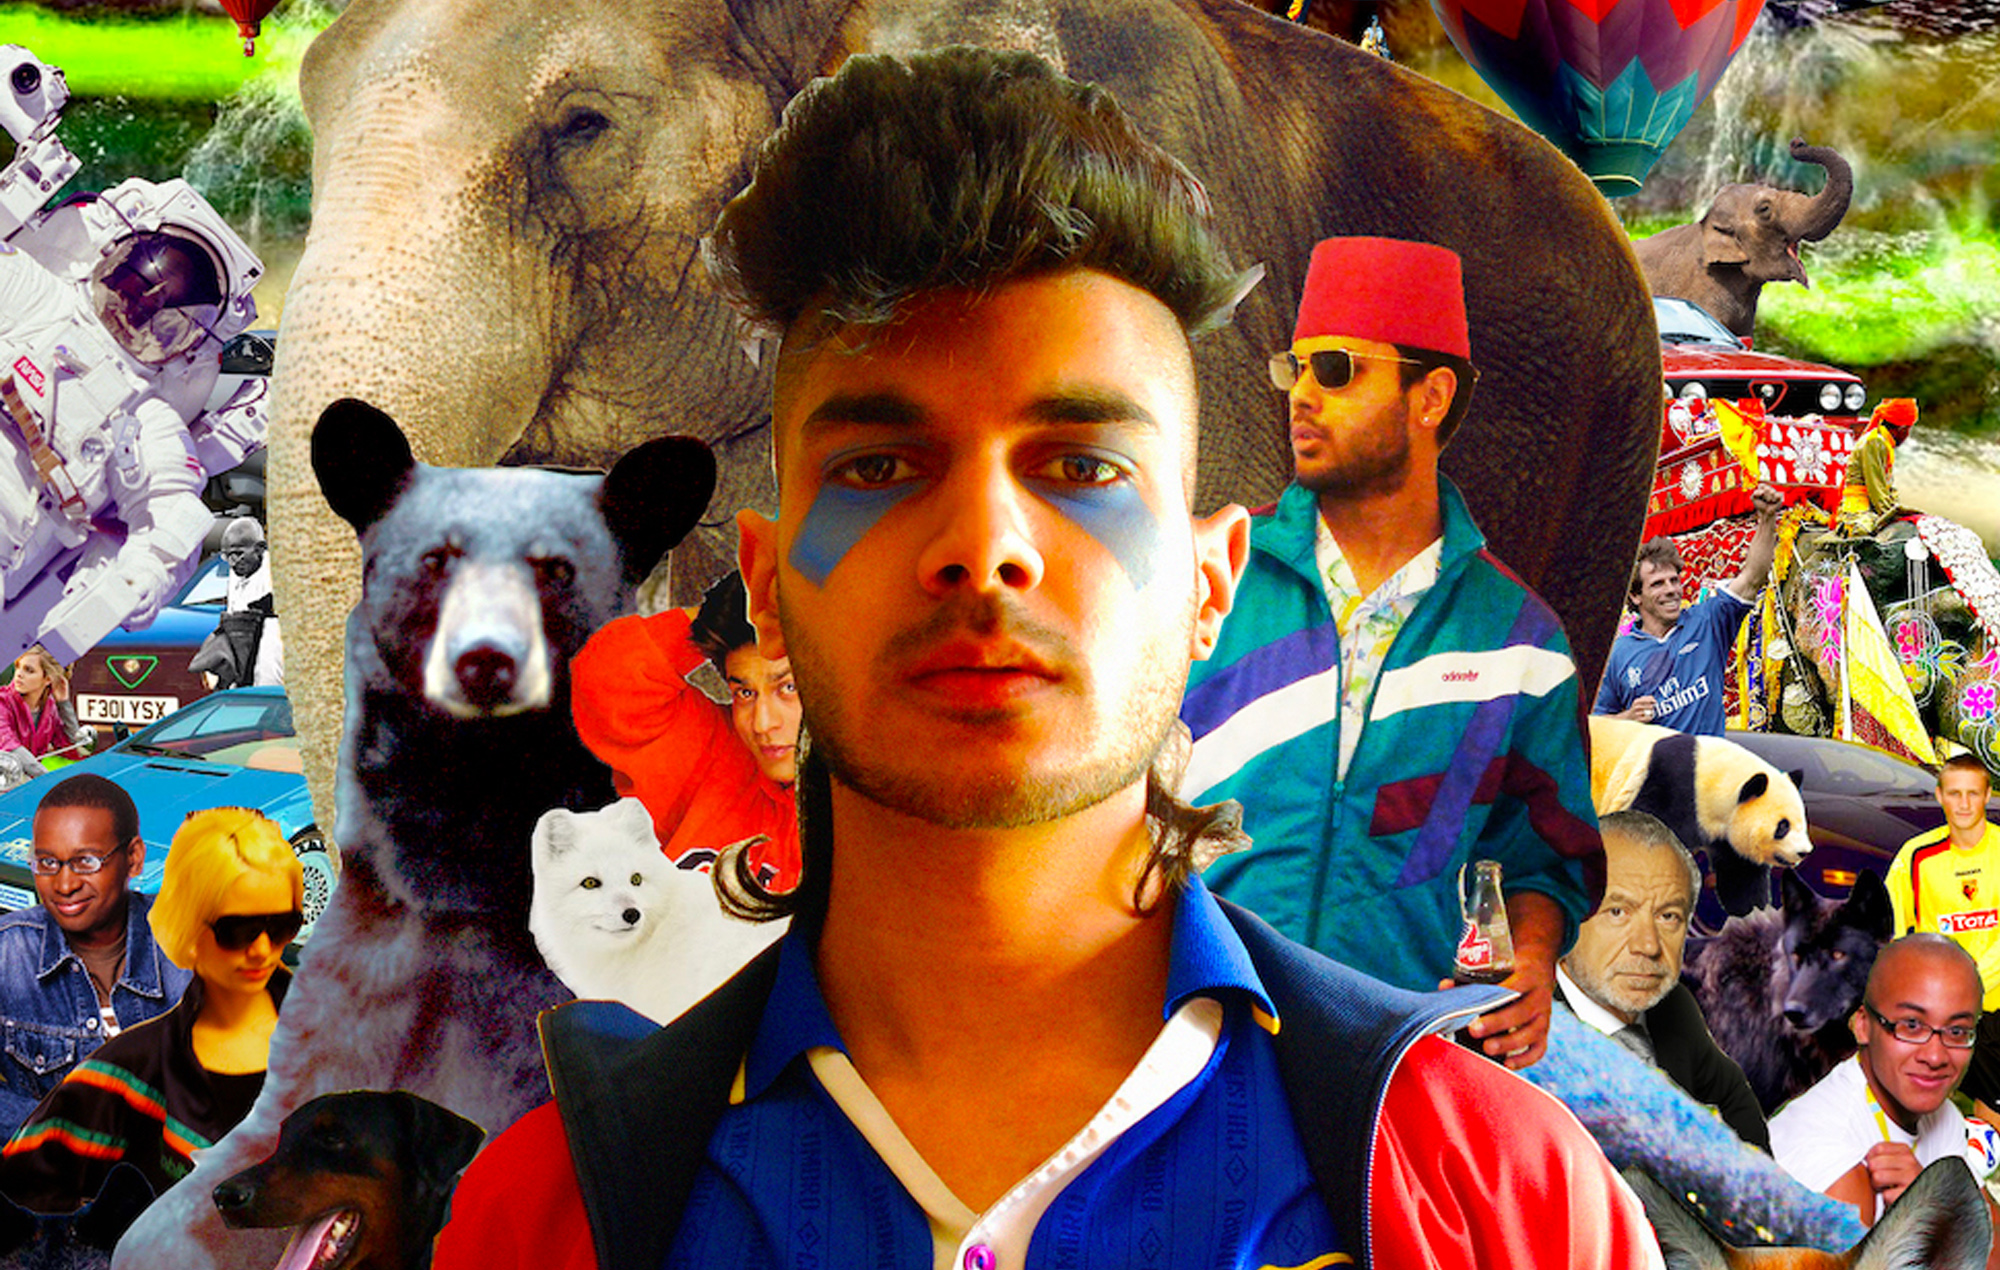 Jai Paul 10th anniversary of BTSTU recreated Myspace page new track Super Salamander